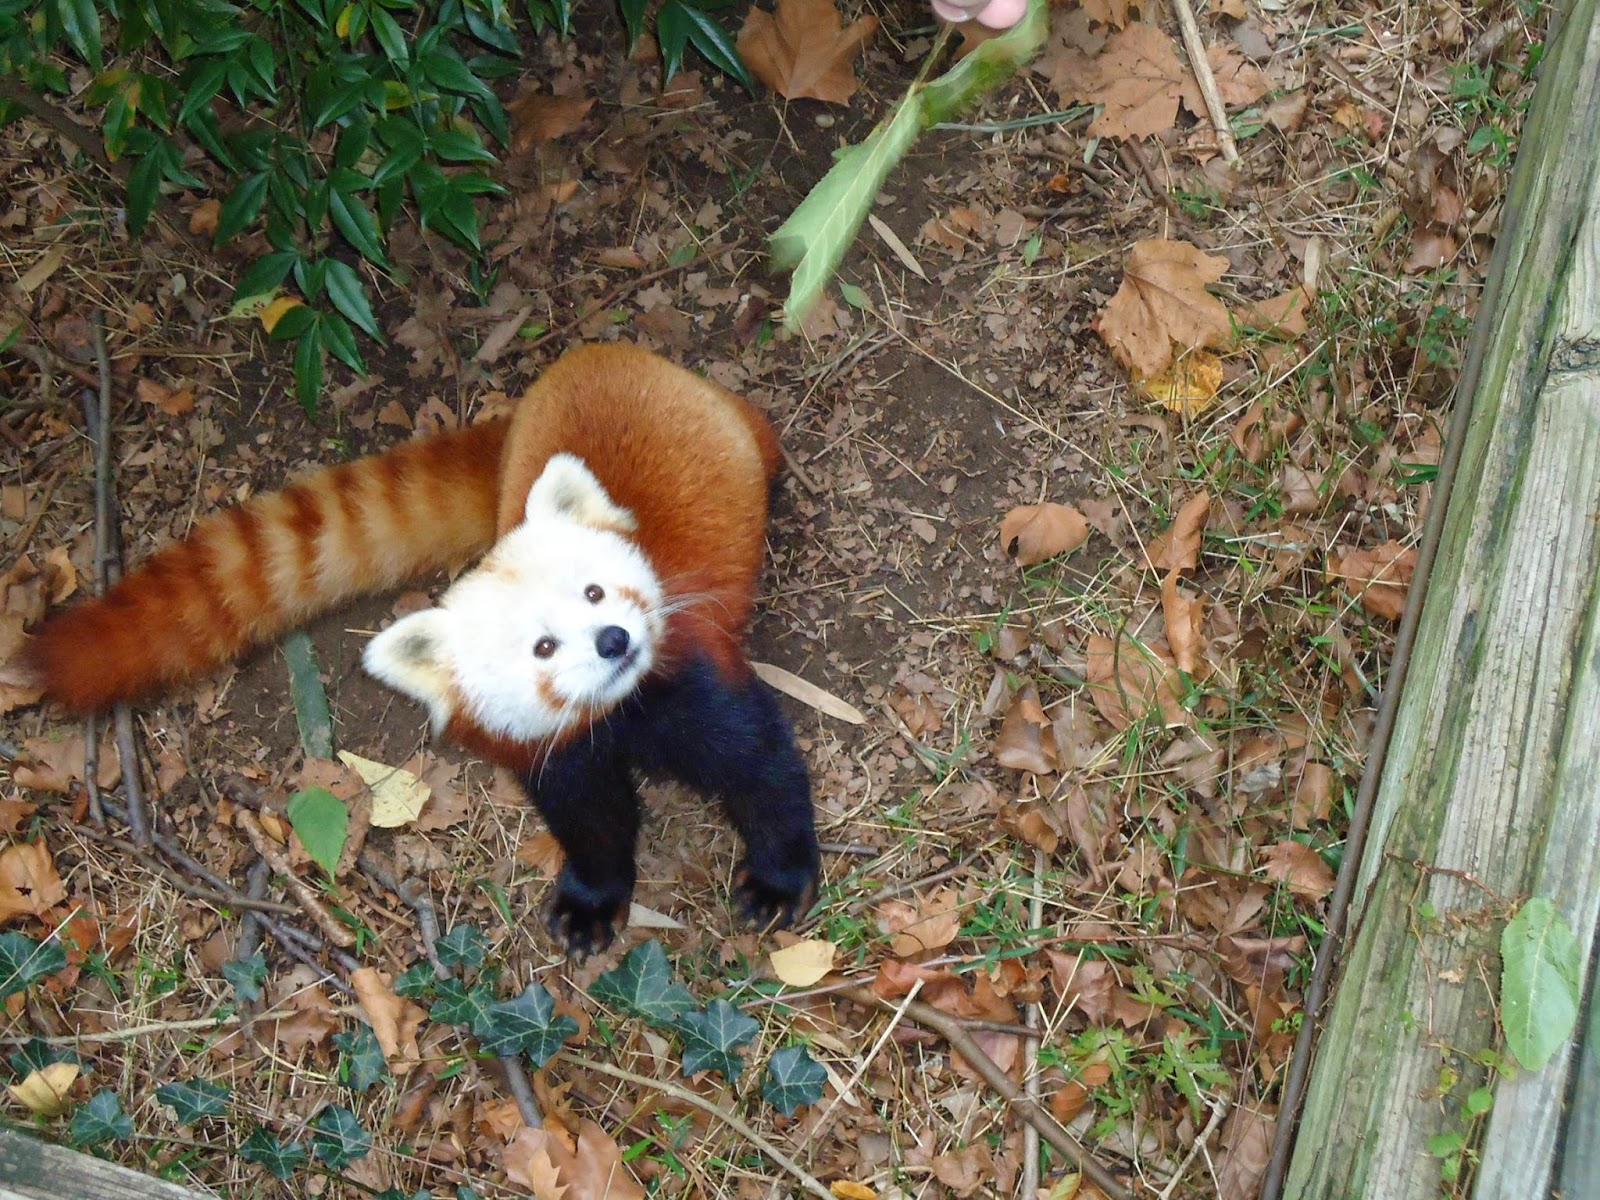 40 Adorable red panda pictures (40 pics), fluffy red panda at the zoo